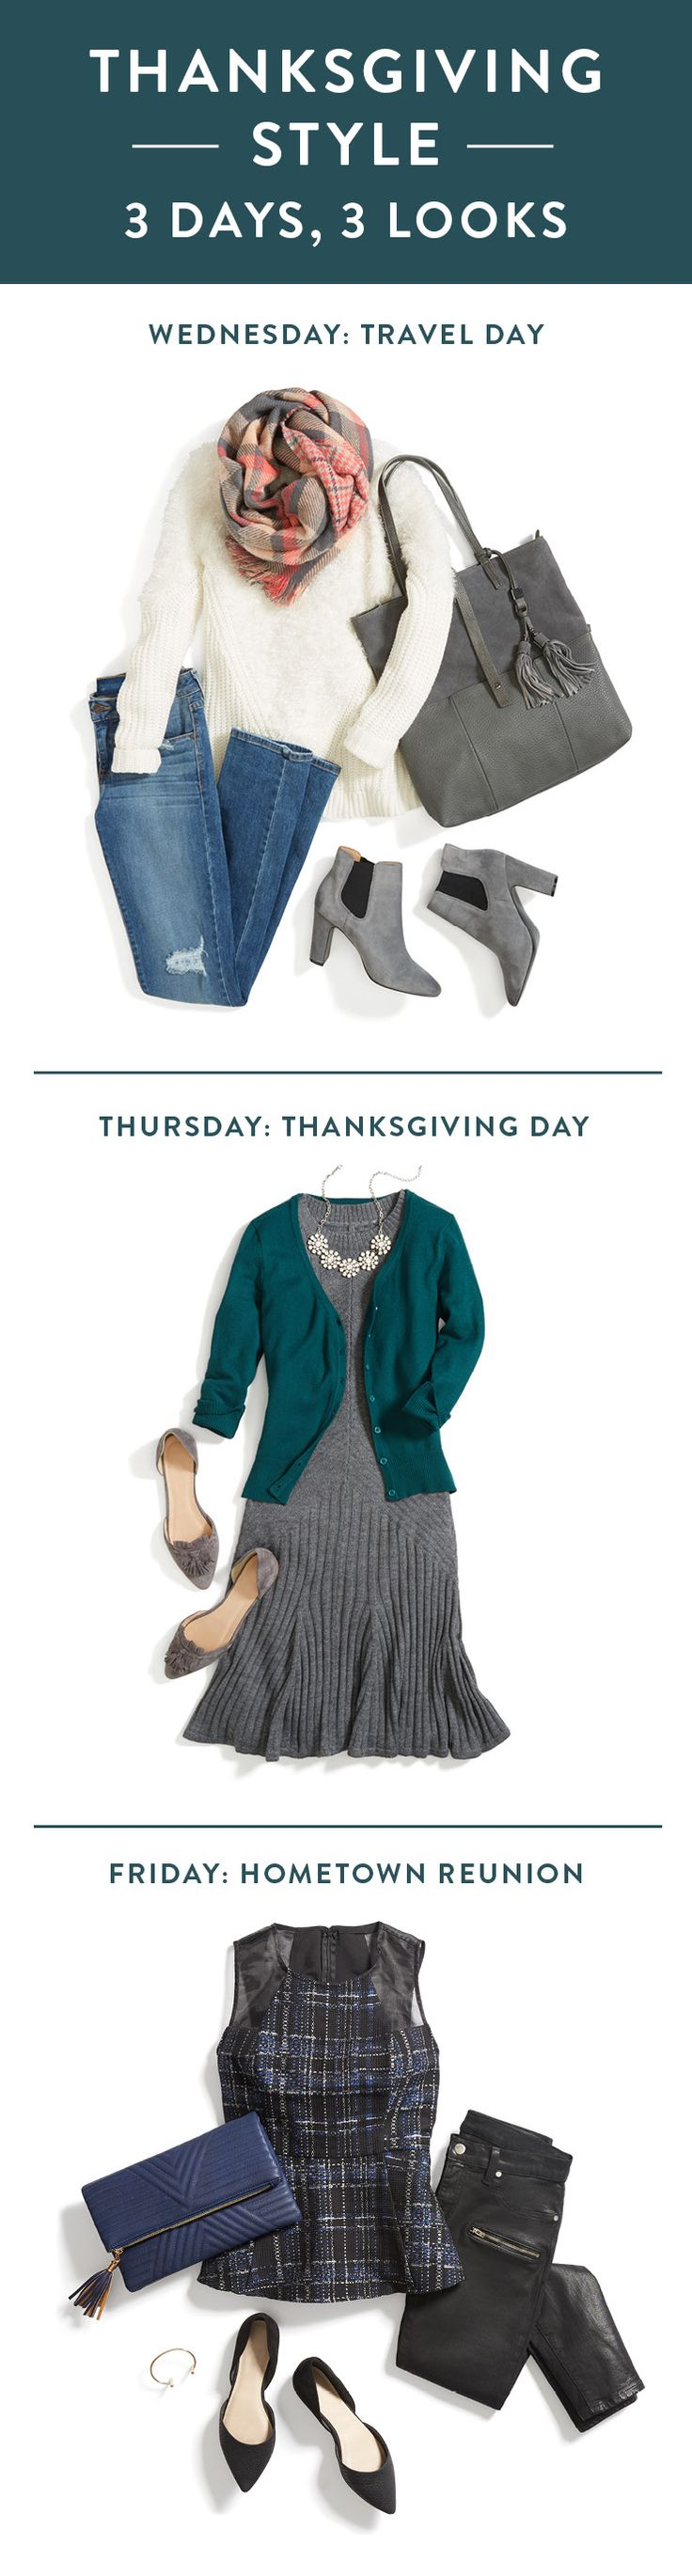 Thanksgiving always seems like the most whirlwind of holidays—mostly because of its short timeframe. Only have limited days off for travel, turkey & day-after socializing—and no time to plan? No worries! Here are three easy looks to throw in your weekender bag to get you stylishly through the holiday.